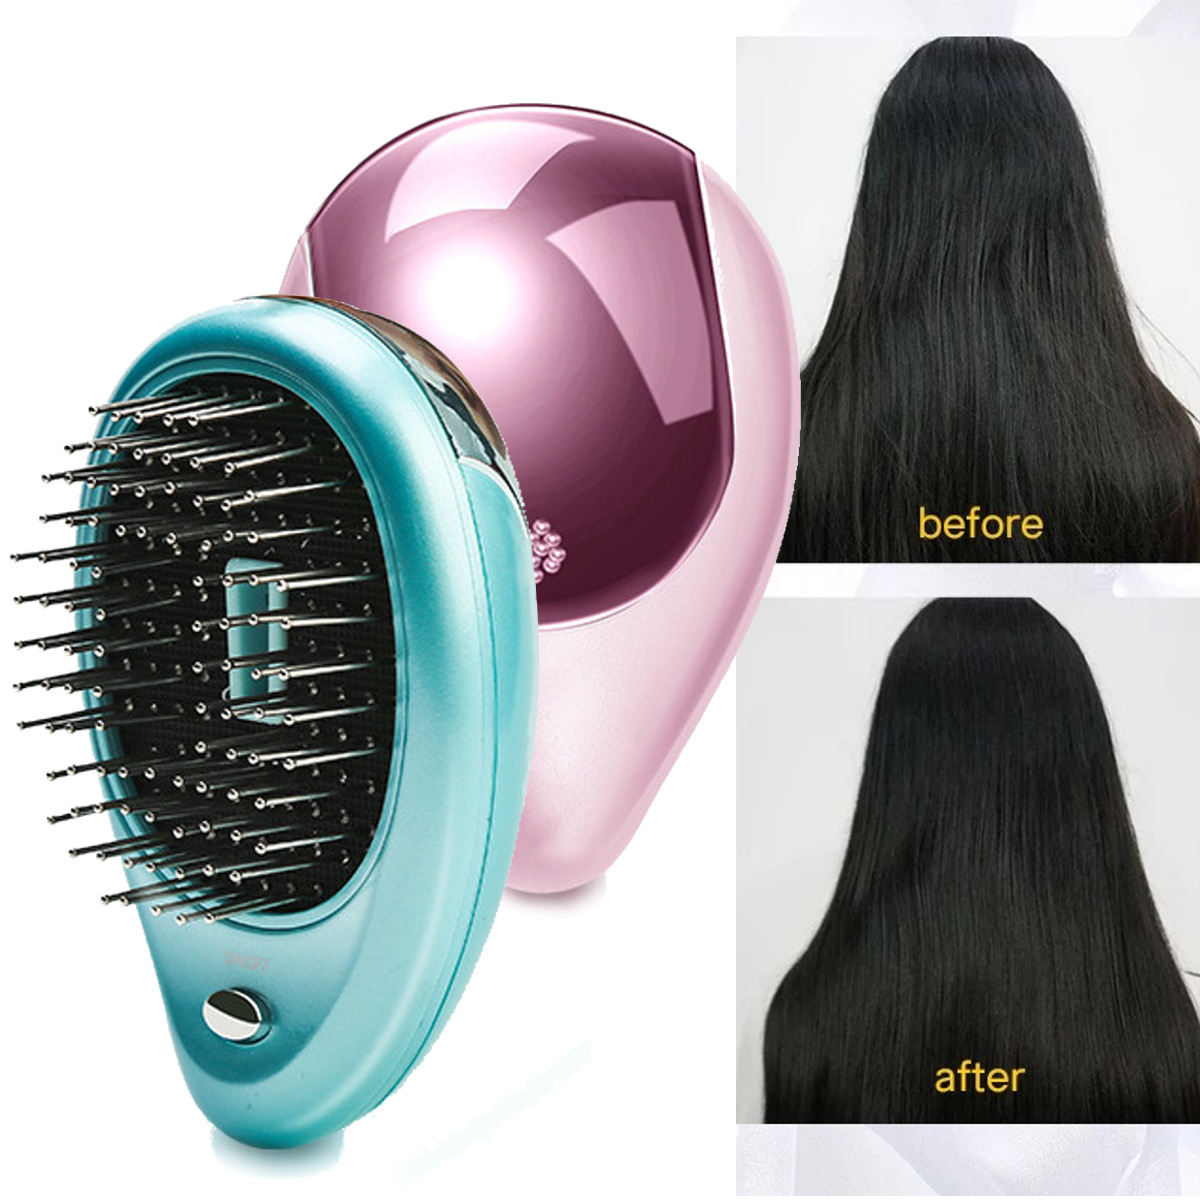 Electric Vibration Wireless Anti Hair Loss Magnetic Massage Comb Portable Ion Hair Growth Comb Hair Brush Relaxation Health Care